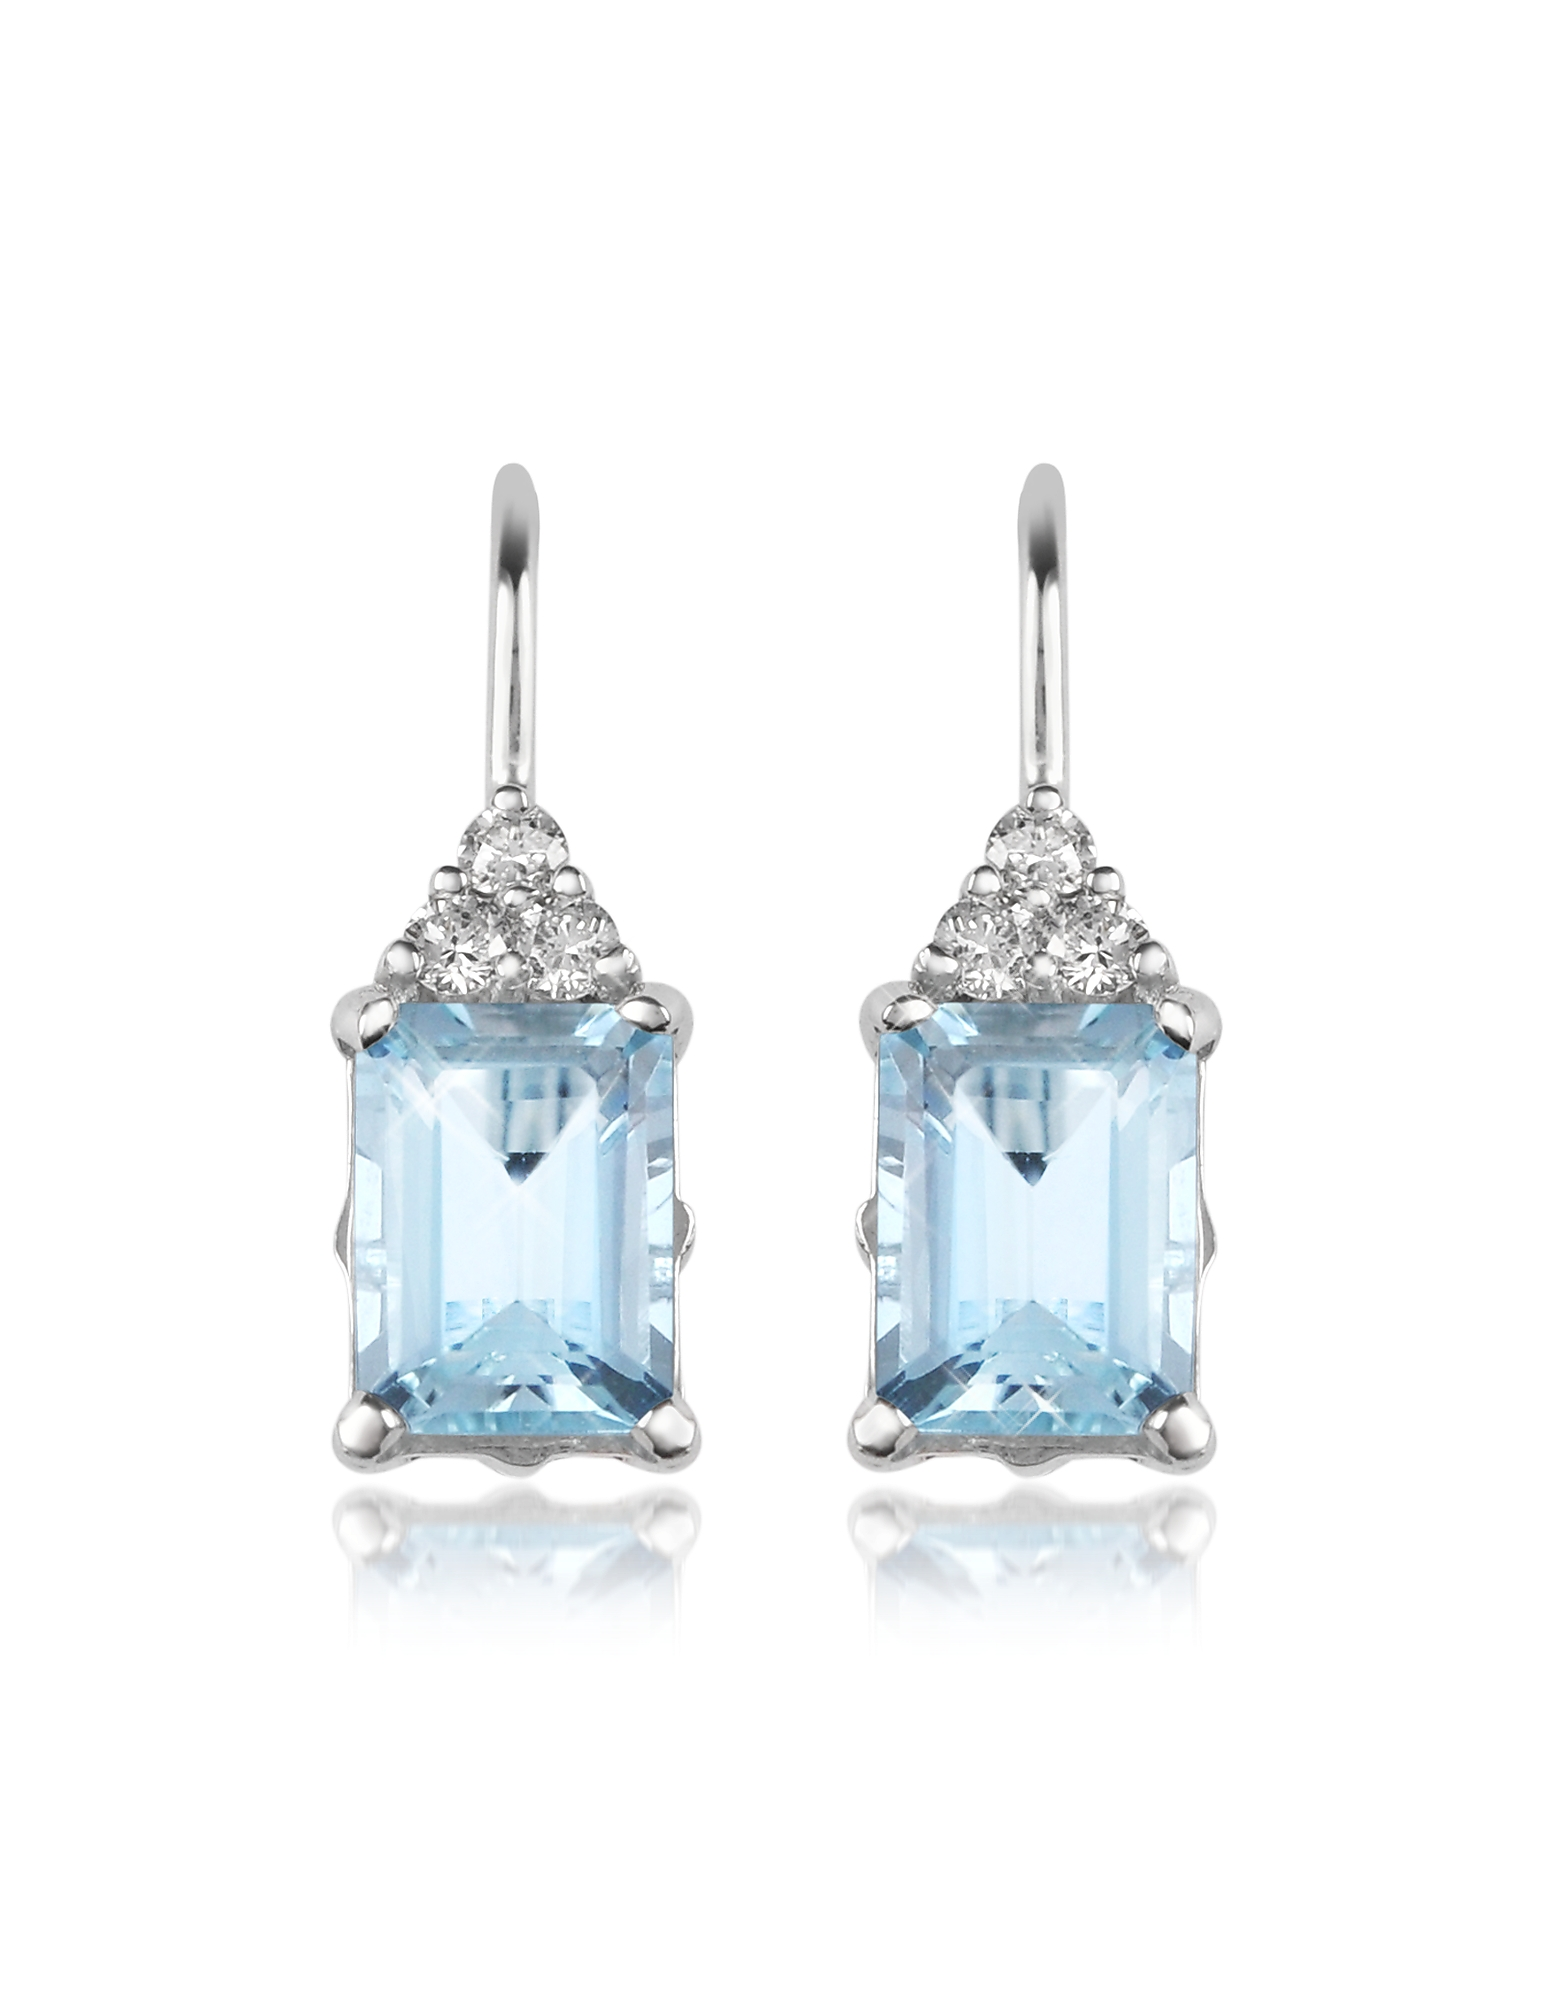 Incanto Royale Earrings, Aquamarine and Diamond 18K Gold Drop Earrings